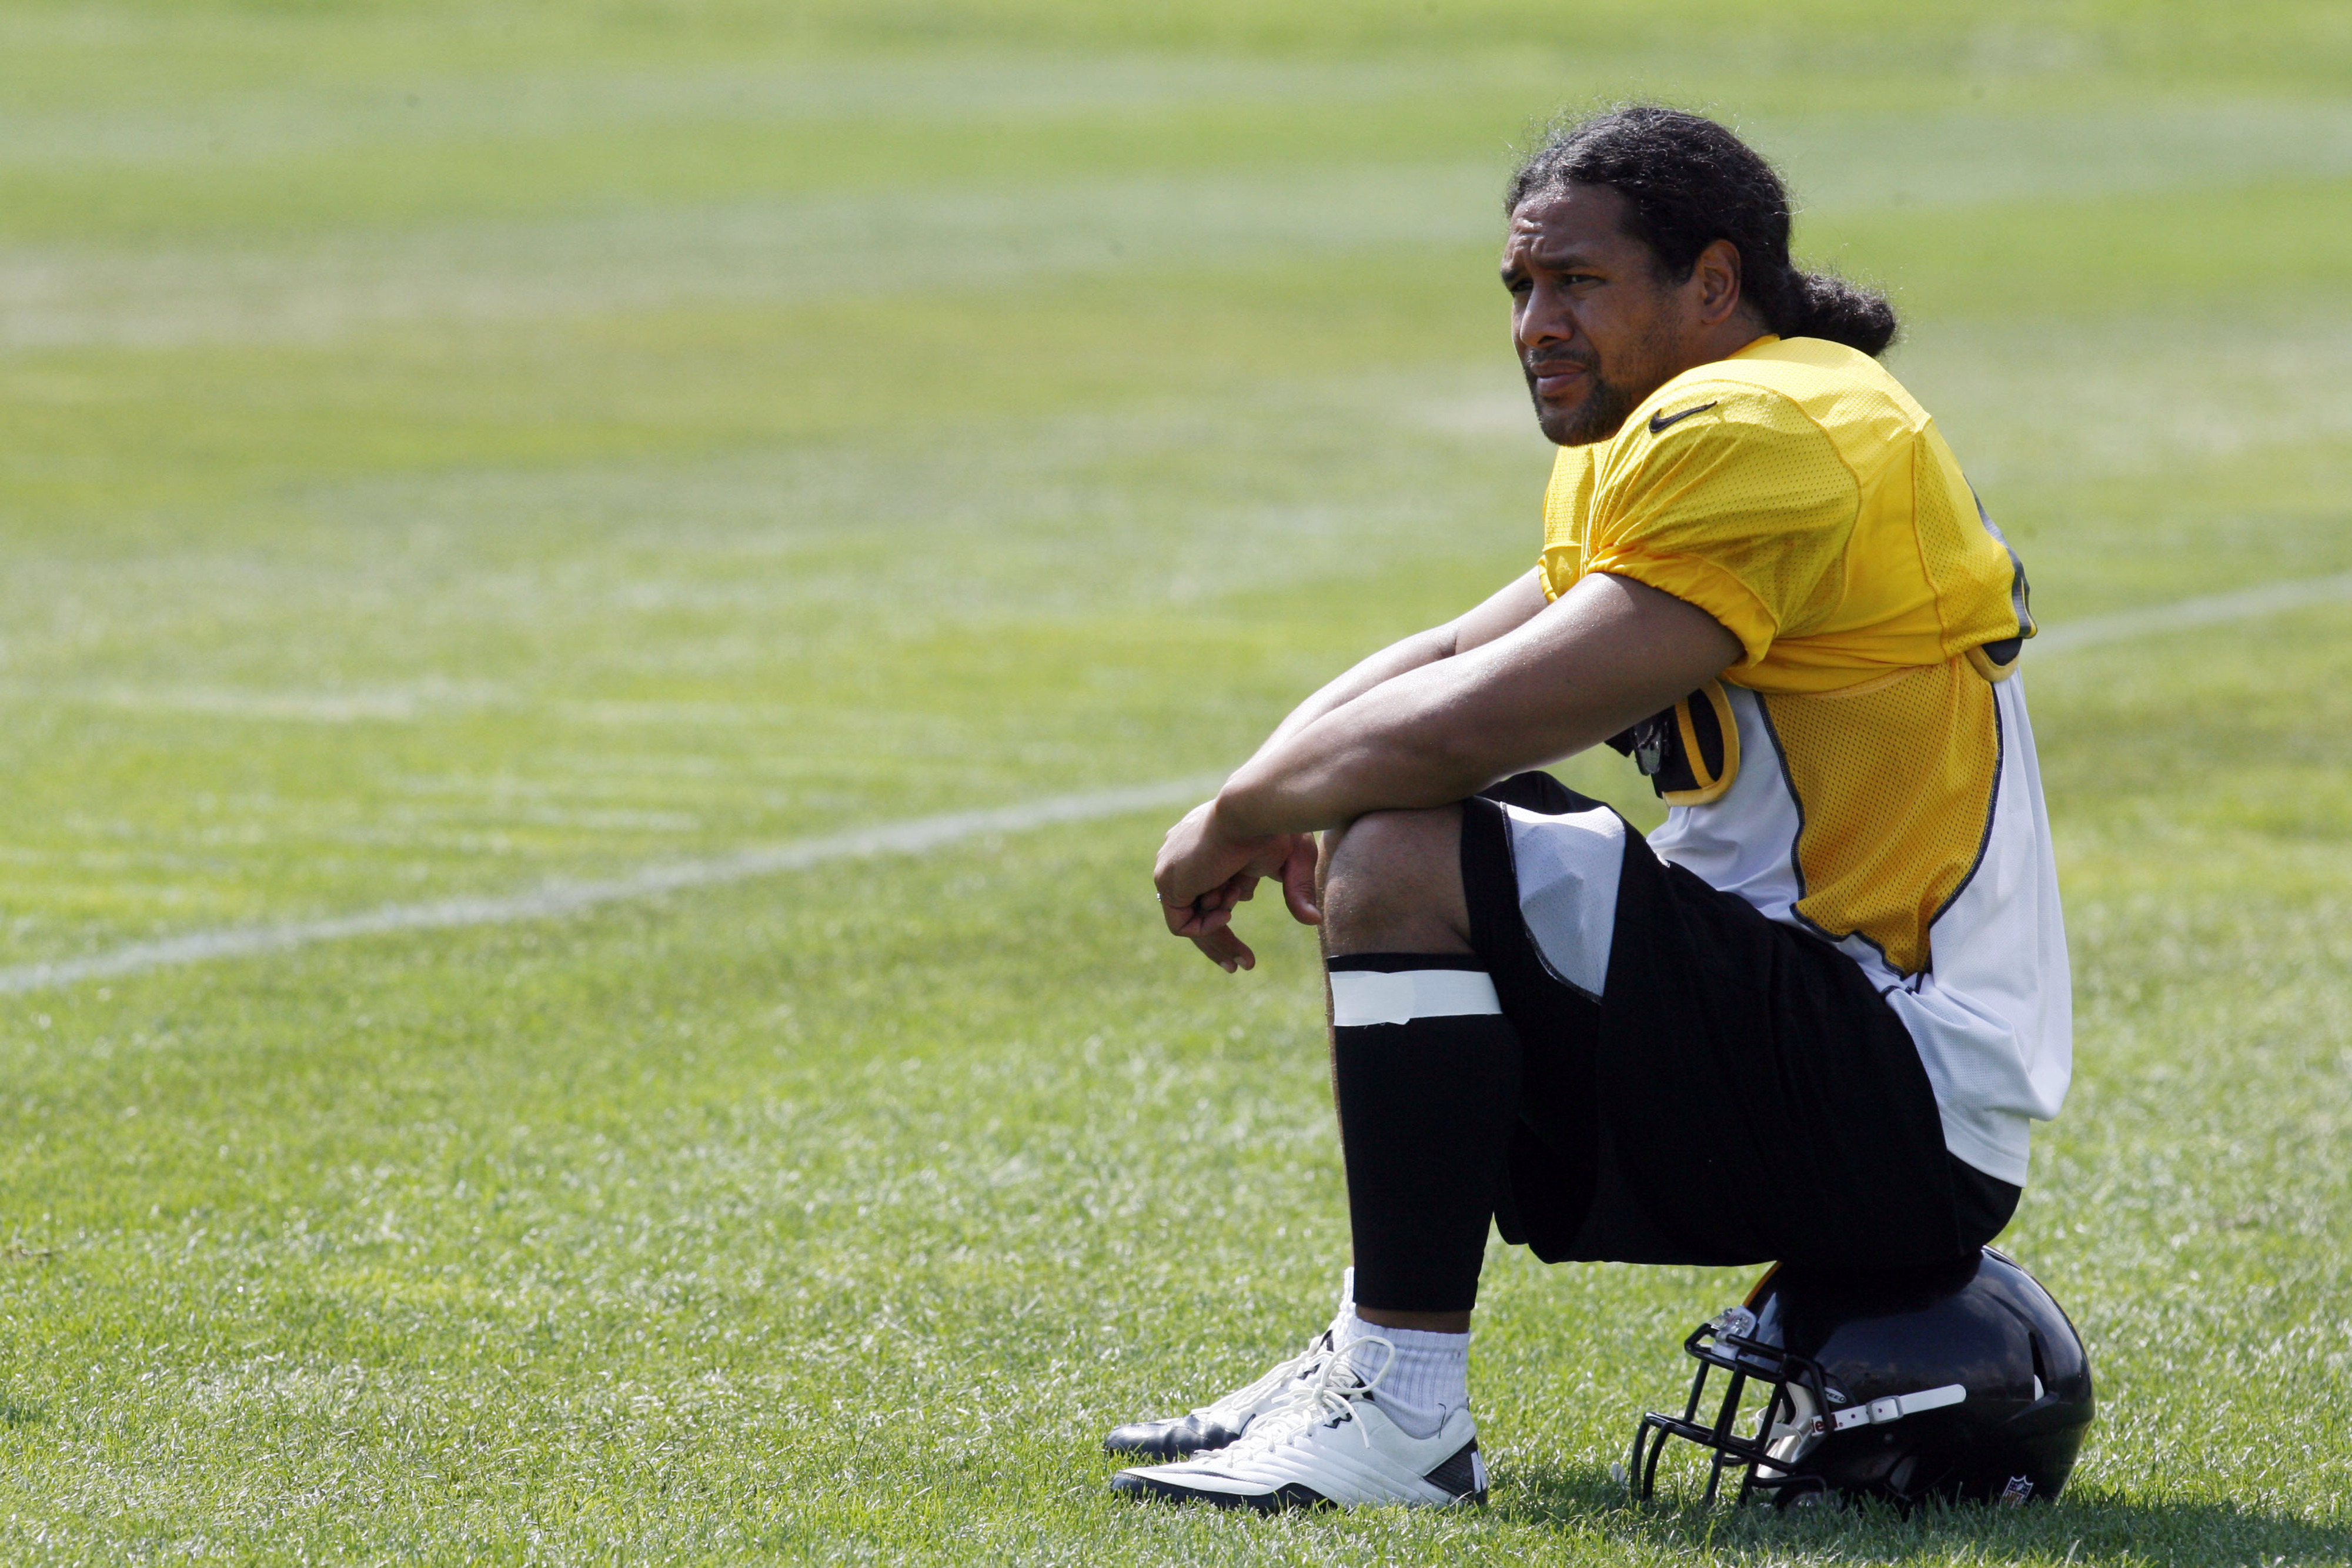 July 28, 2012; Pittsburgh, PA, USA; Pittsburgh Steelers safety Troy Polamalu (43) looks on during training camp at Saint Vincent College. Mandatory Credit: Charles LeClaire-US PRESSWIRE